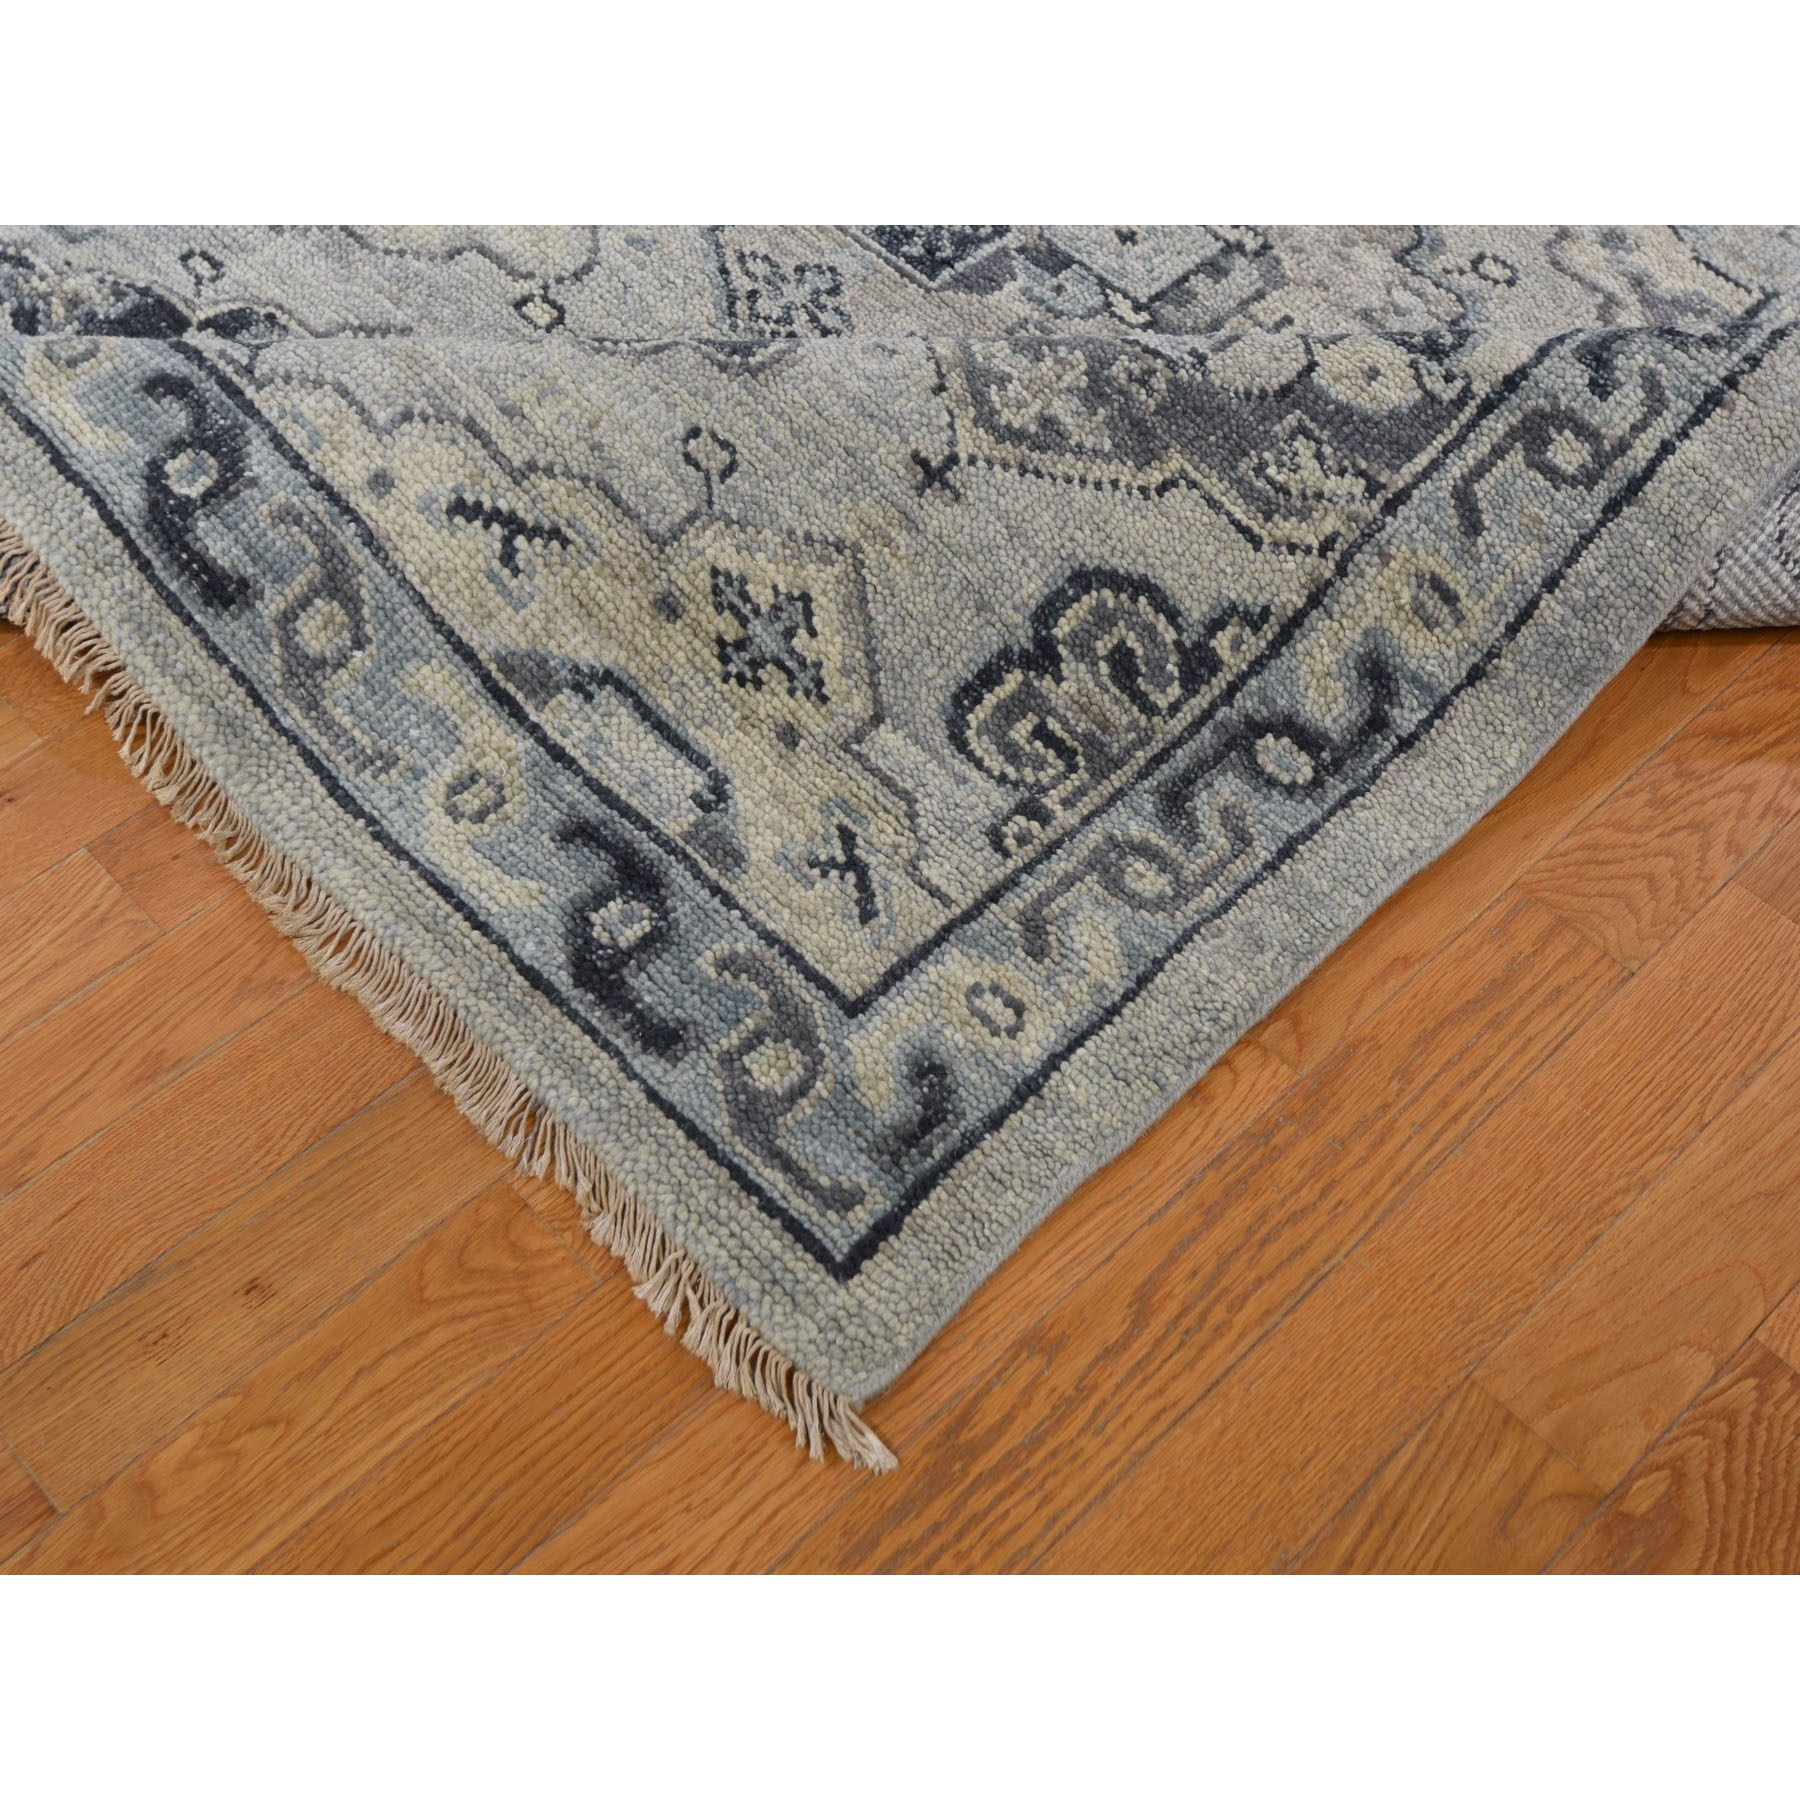 """10'2""""x14'1"""" Gray Supple Collection Oushak Design Hand Knotted Oriental Rug"""